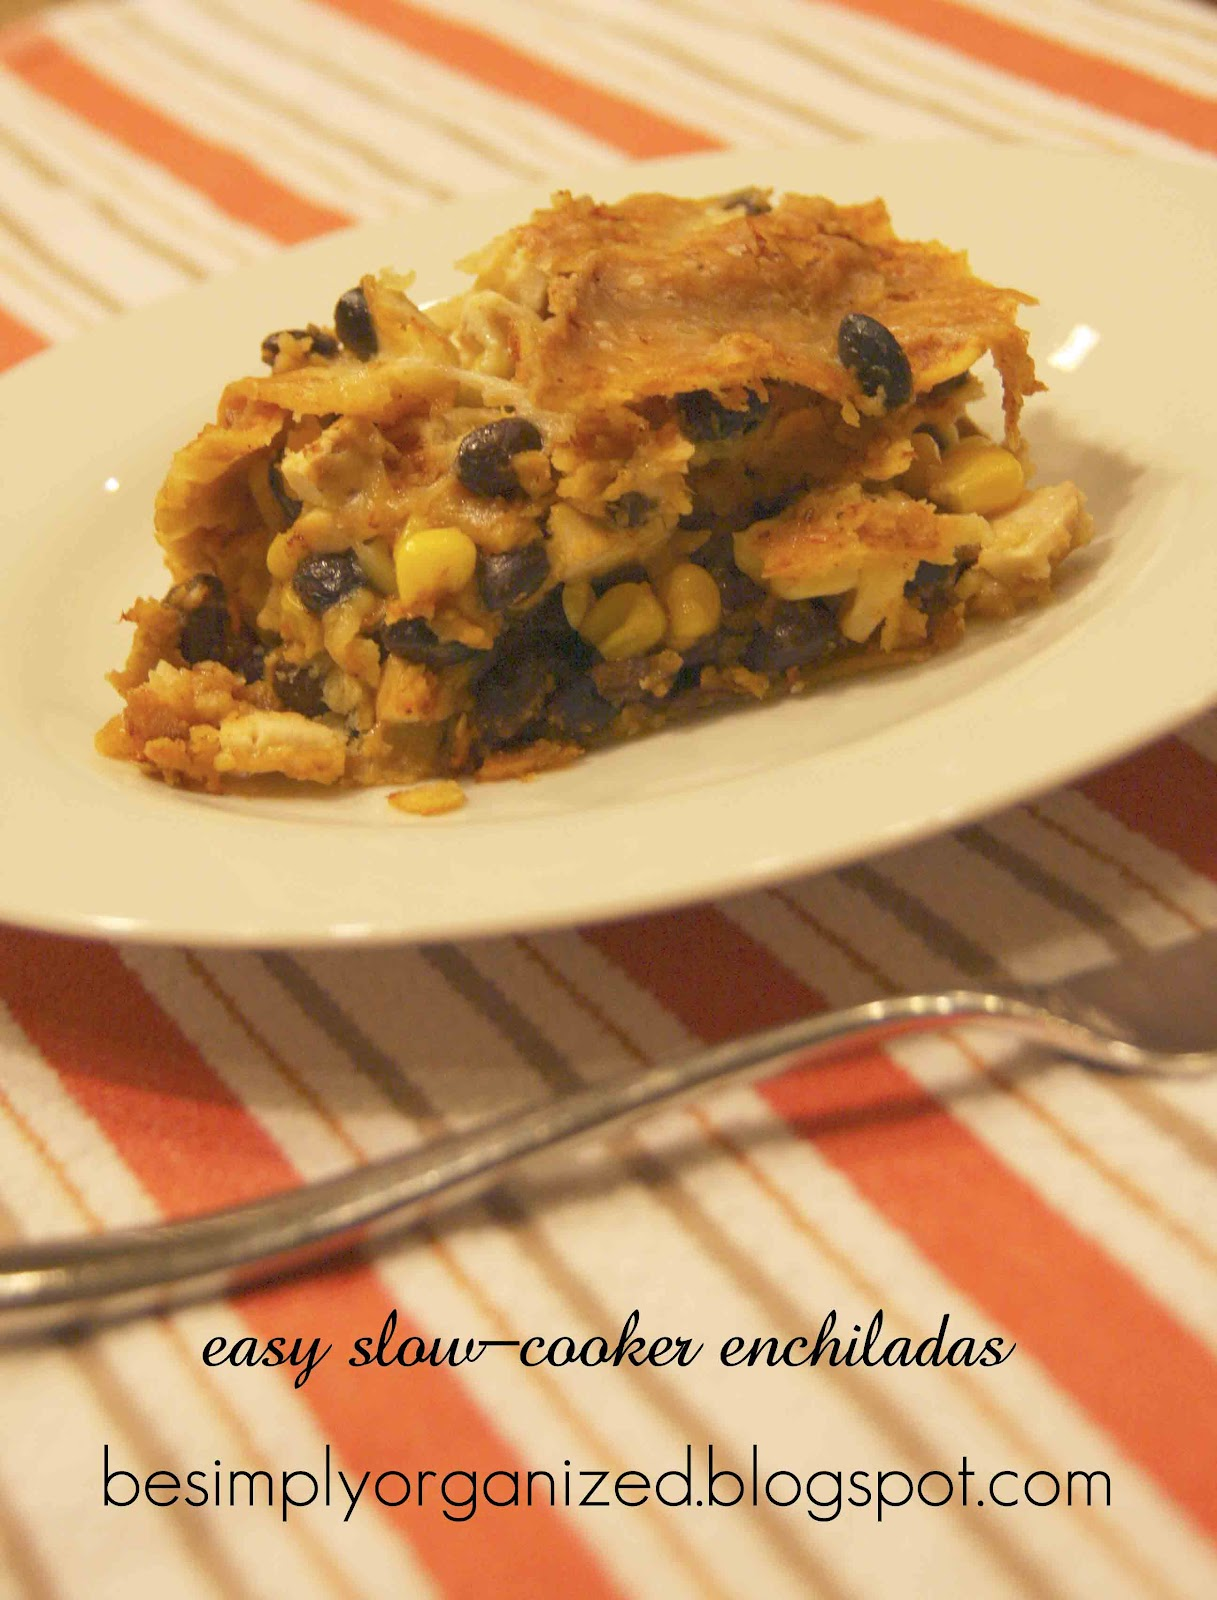 simply organized: recipe: easy slow-cooker enchiladas